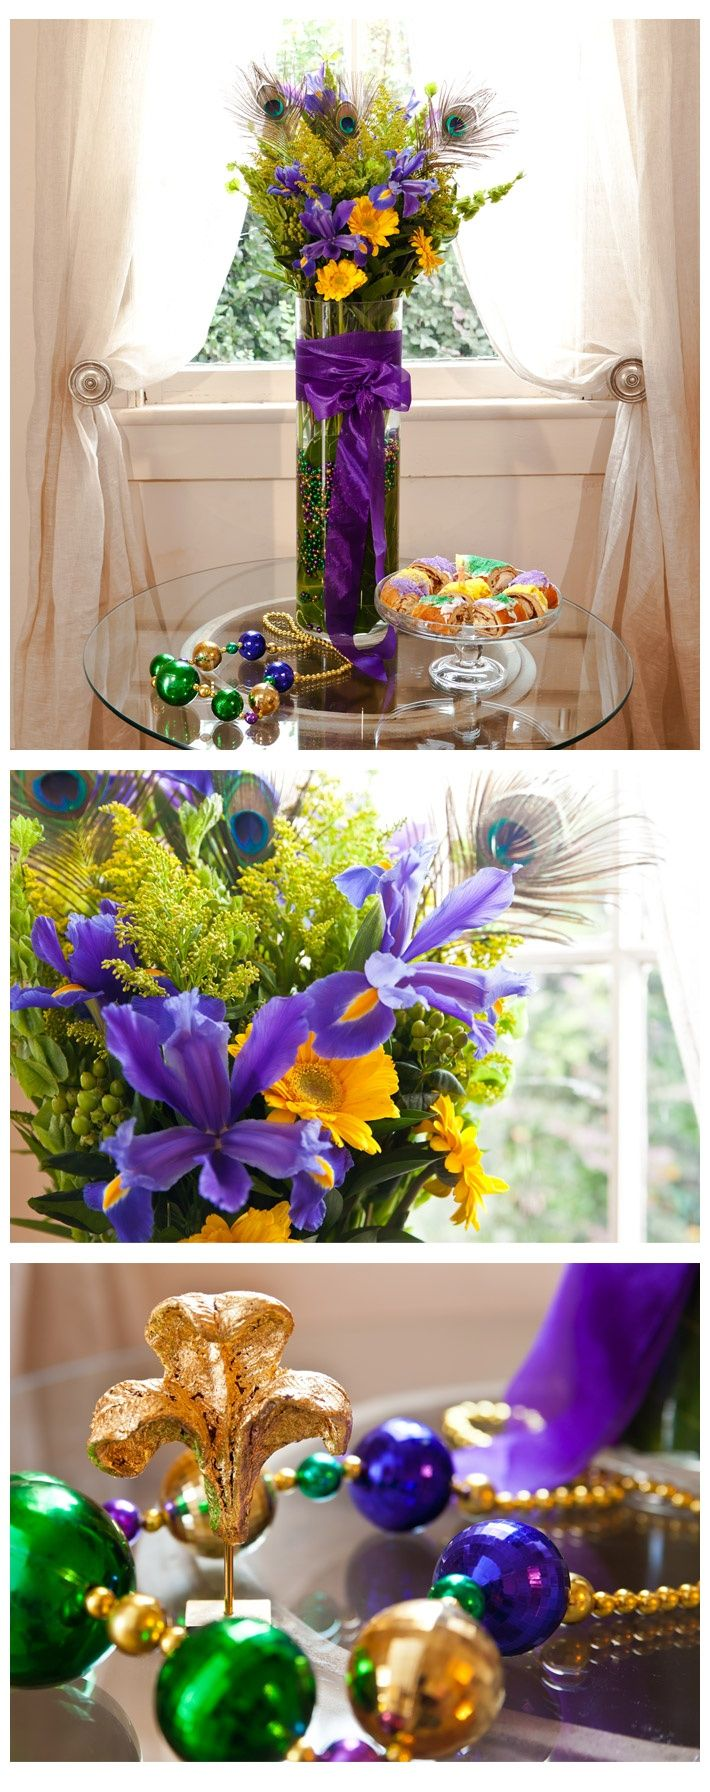 Best mardi gras arrangements images on pinterest